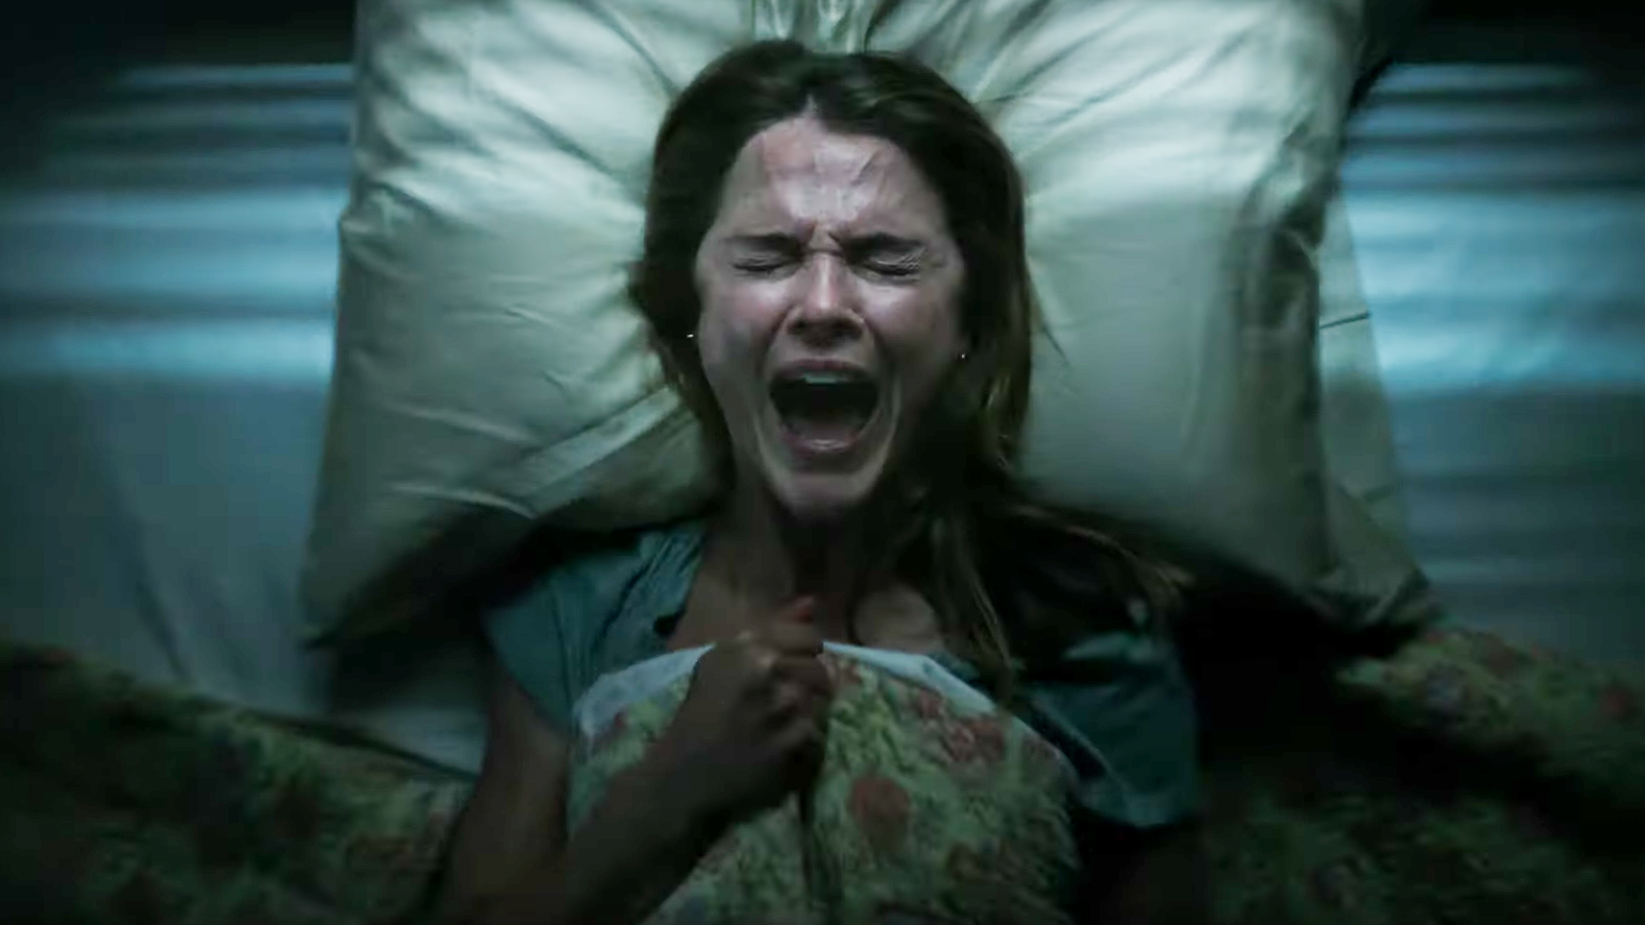 Watch: Trailer for 'Antlers'